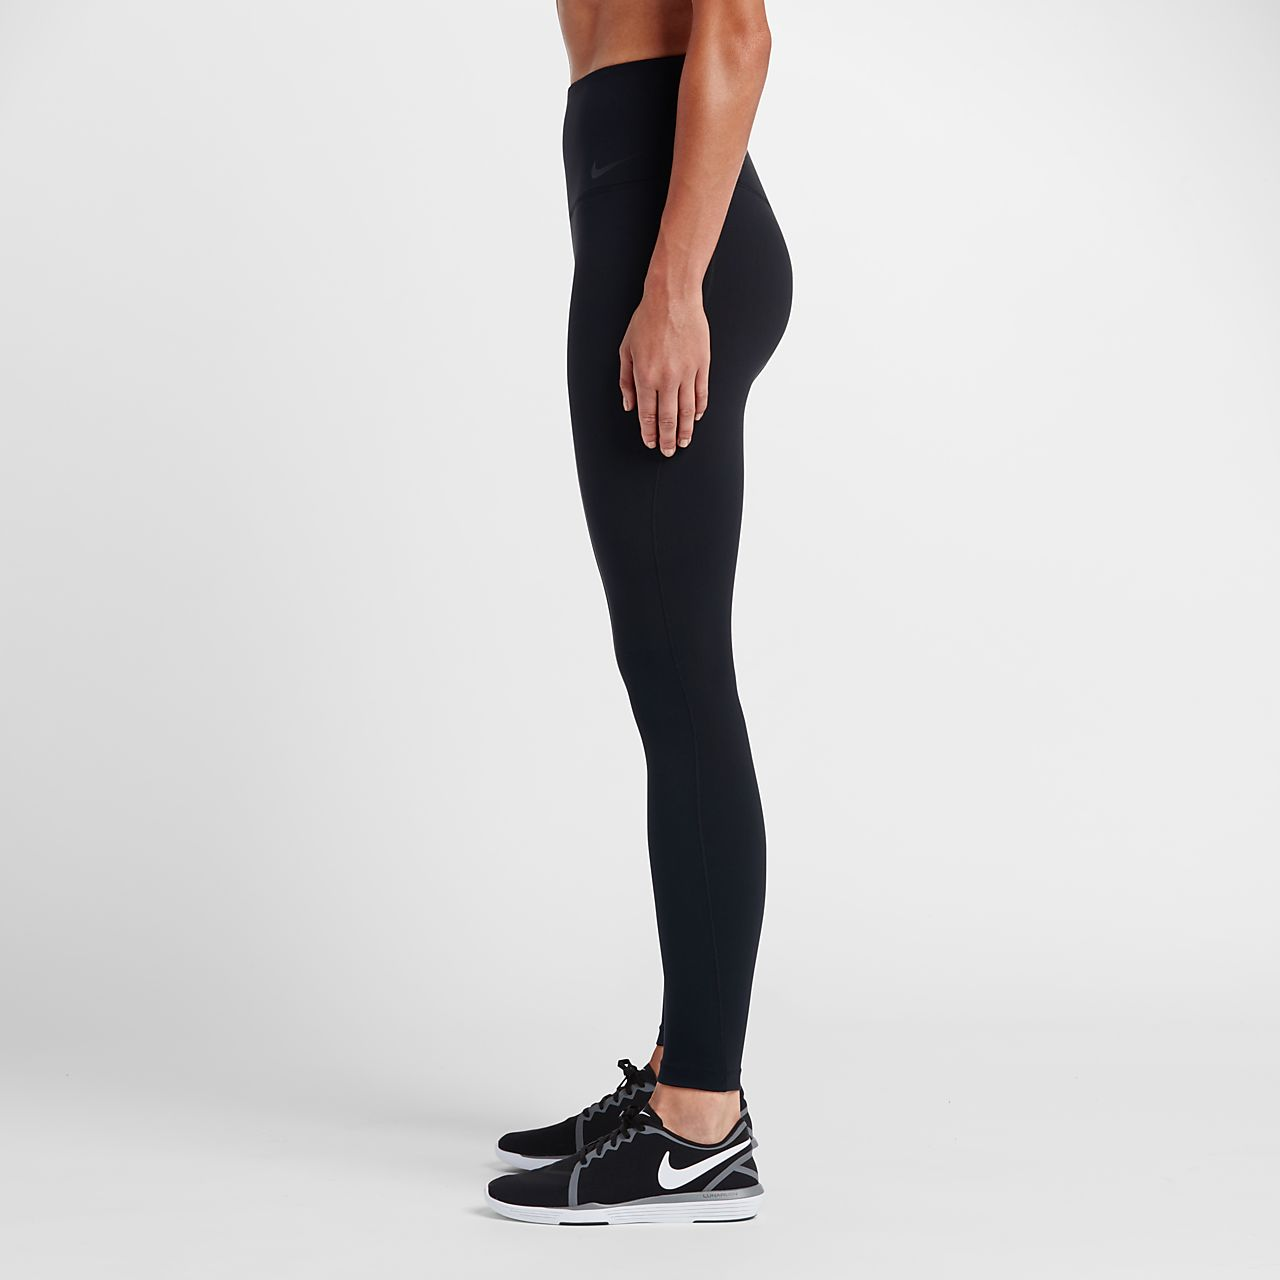 nike power legendary women 39 s 28 high rise training tights. Black Bedroom Furniture Sets. Home Design Ideas